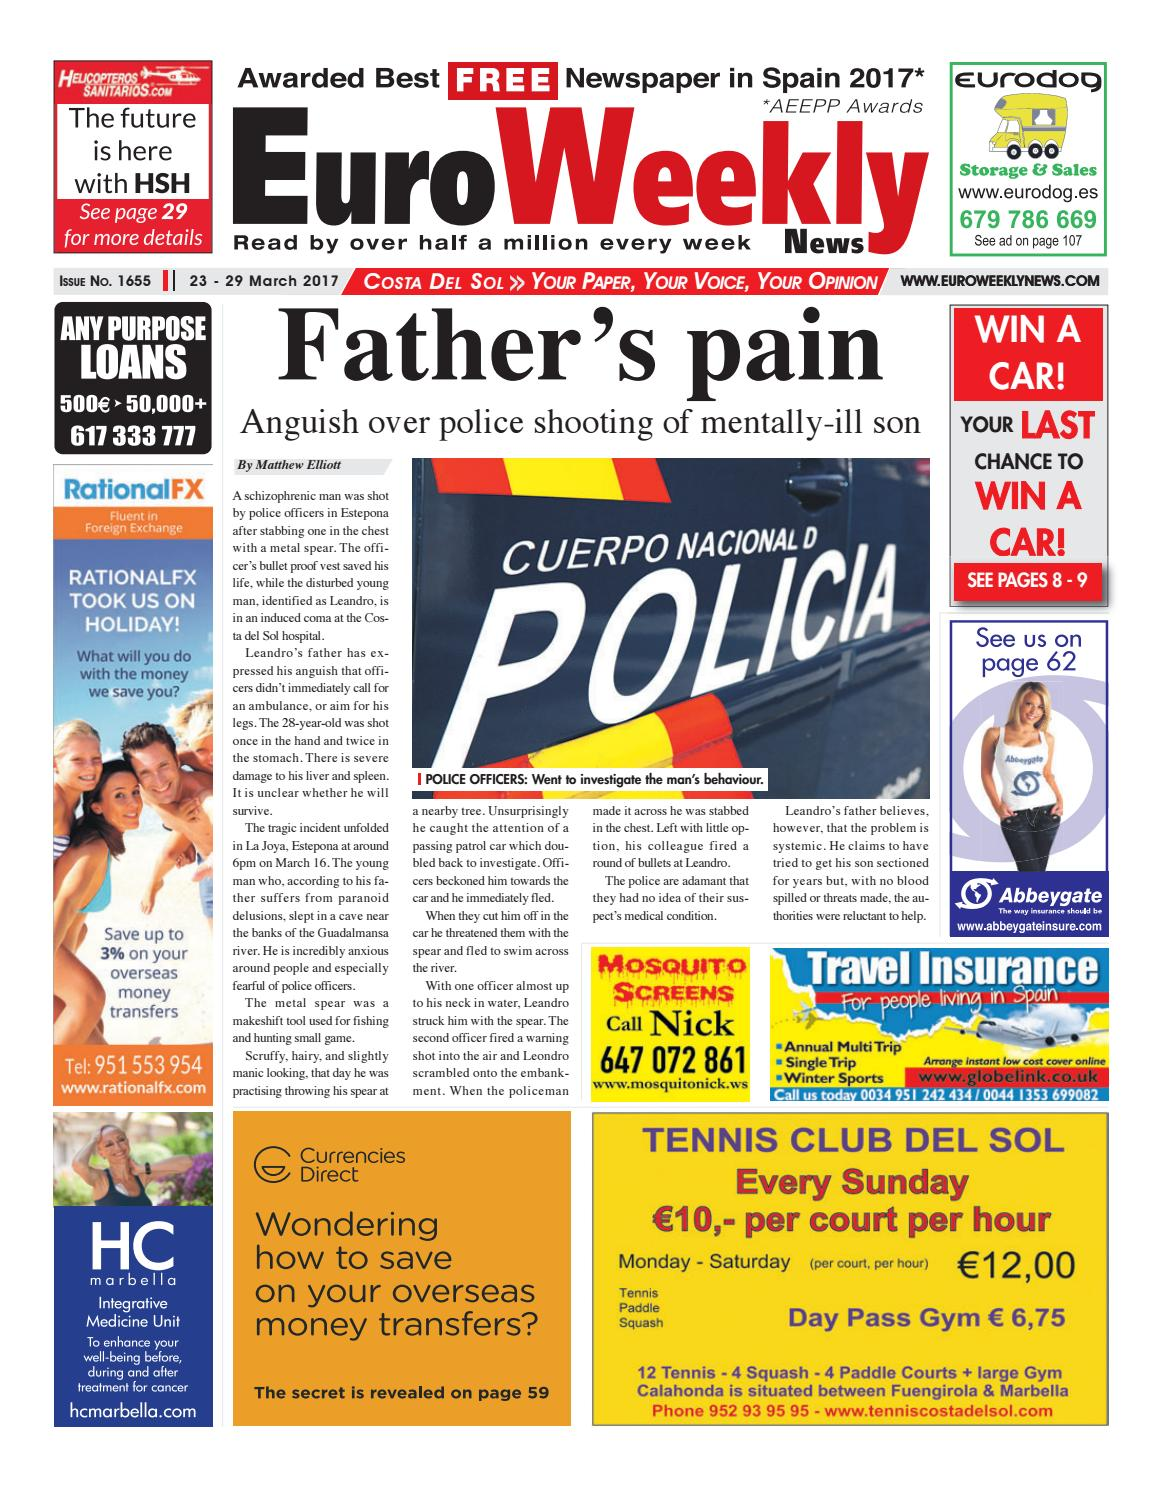 Euro weekly news costa del sol 23 29 march 2017 issue 1655 by euro weekly news costa del sol 23 29 march 2017 issue 1655 by euro weekly news media sa issuu fandeluxe Gallery